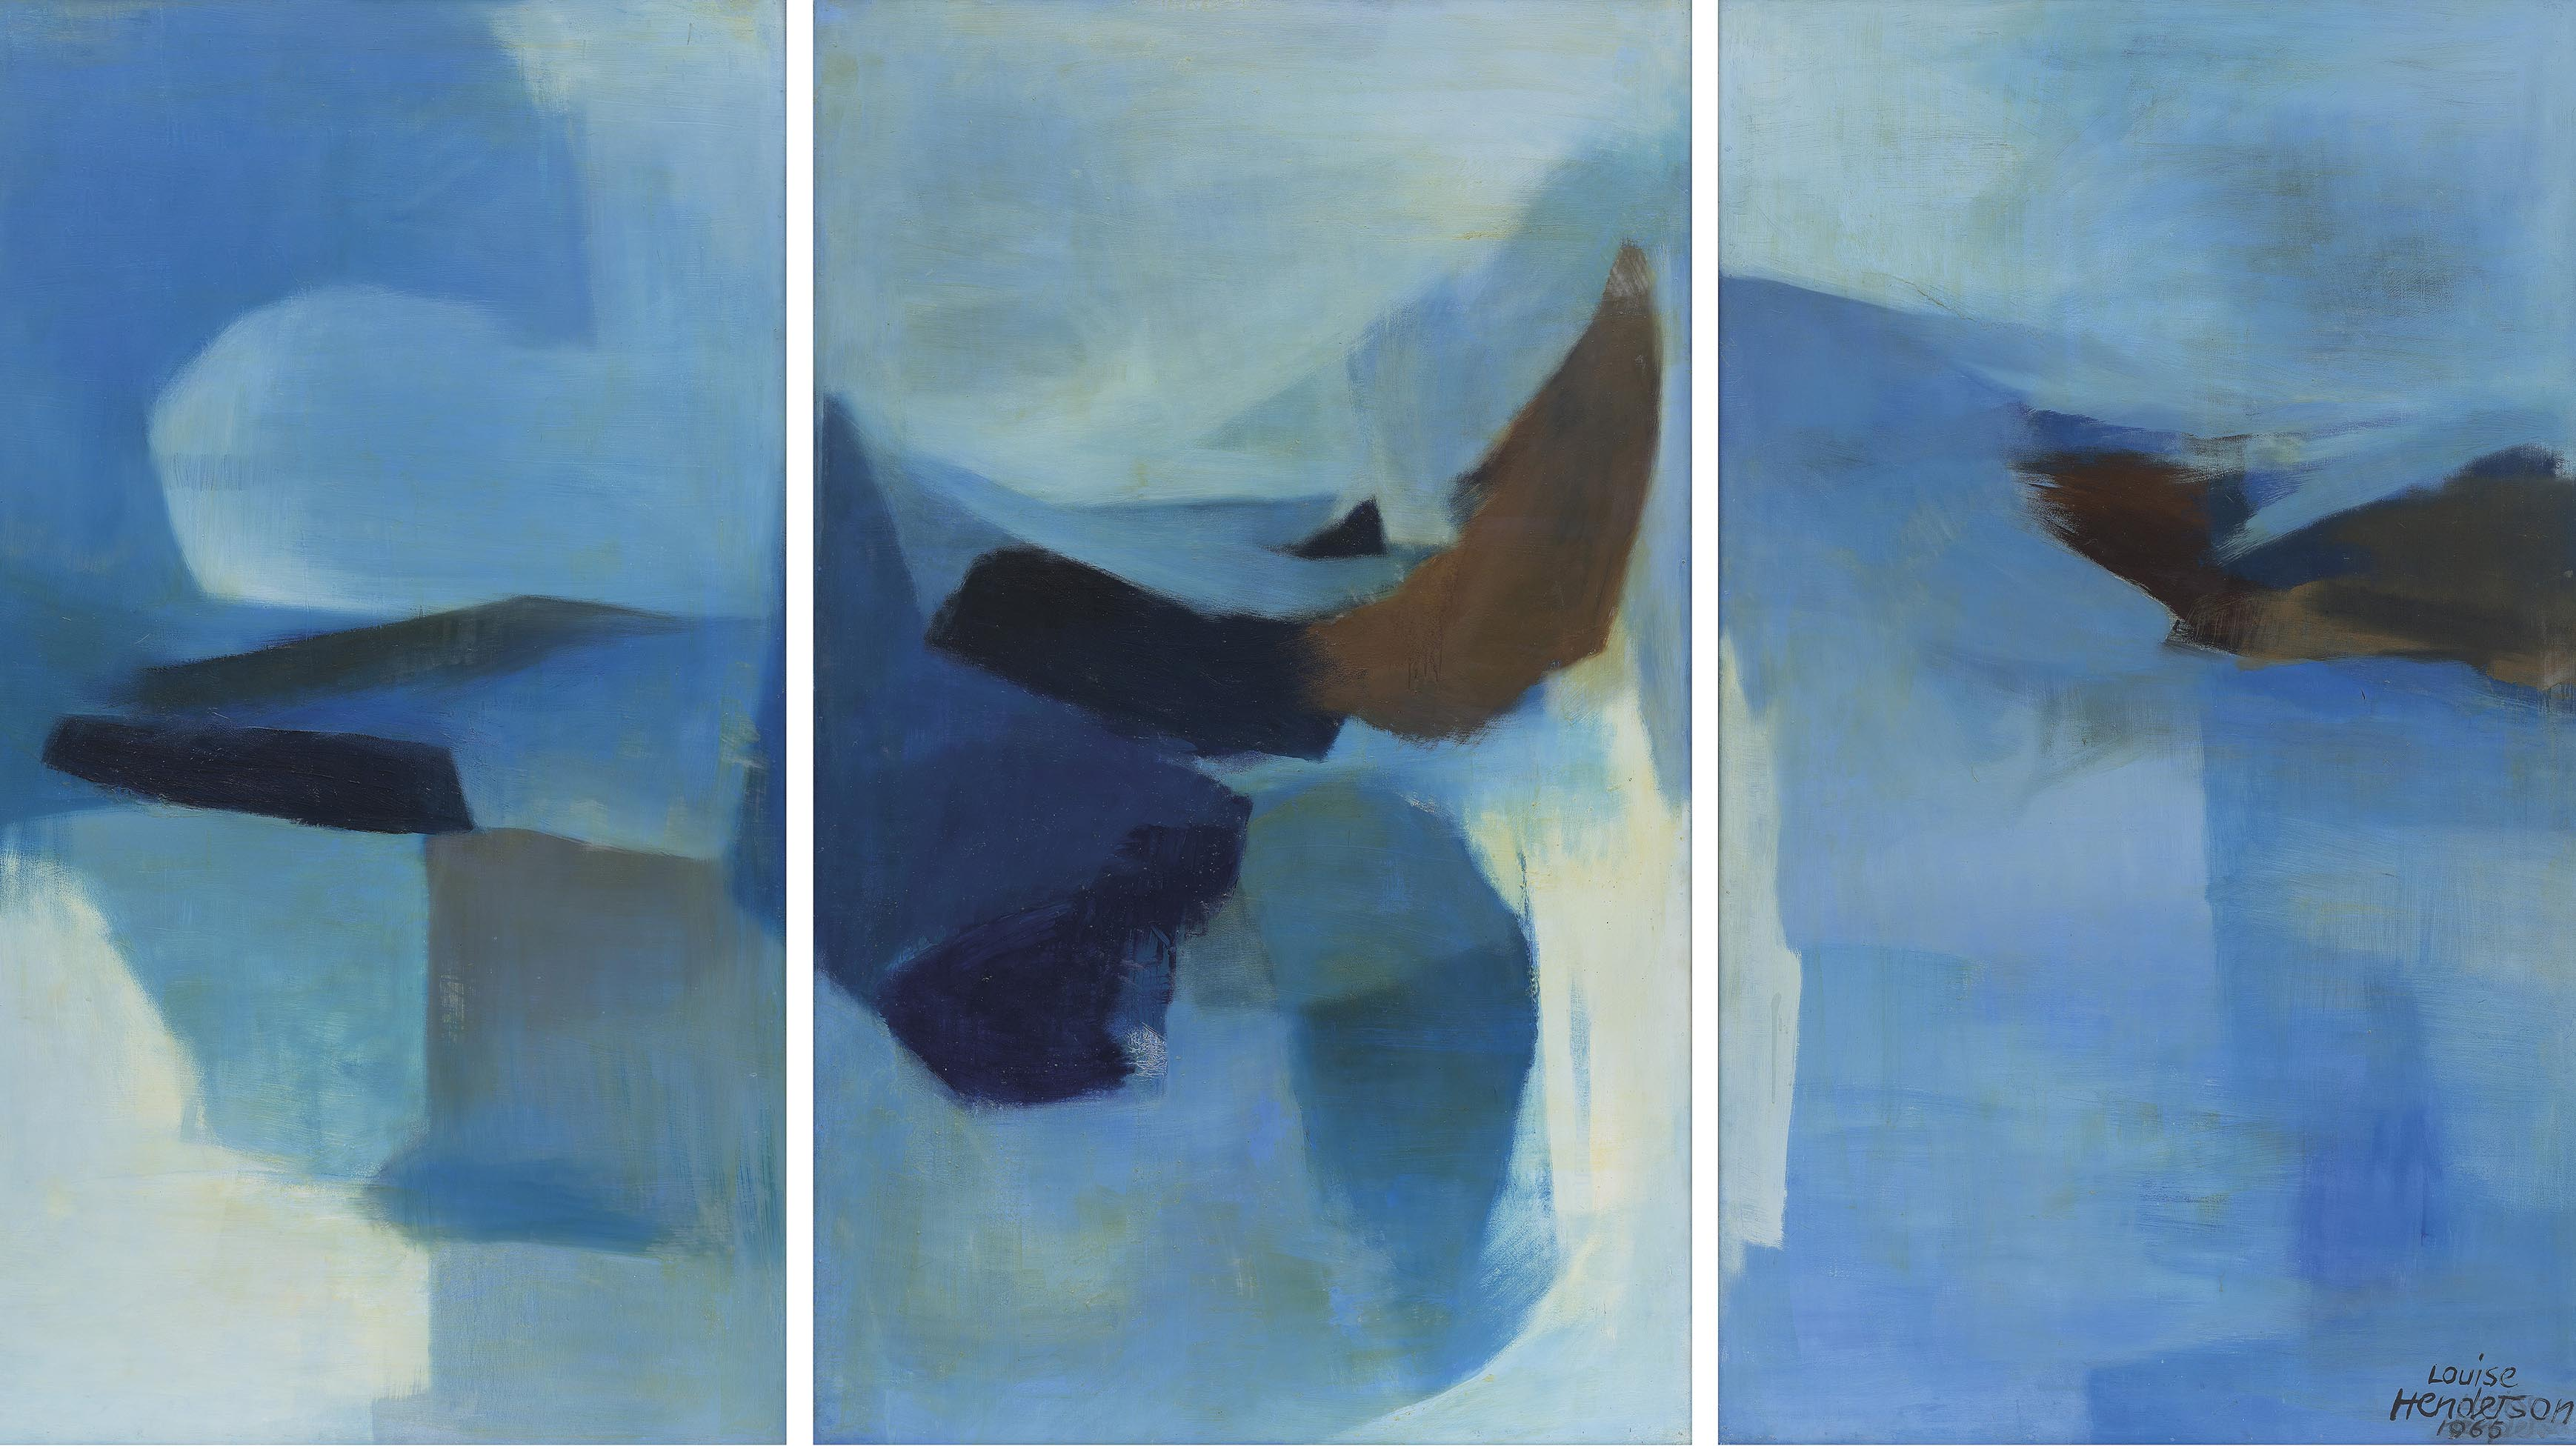 The Lakes (triptych), Louise Henderson, 1965.